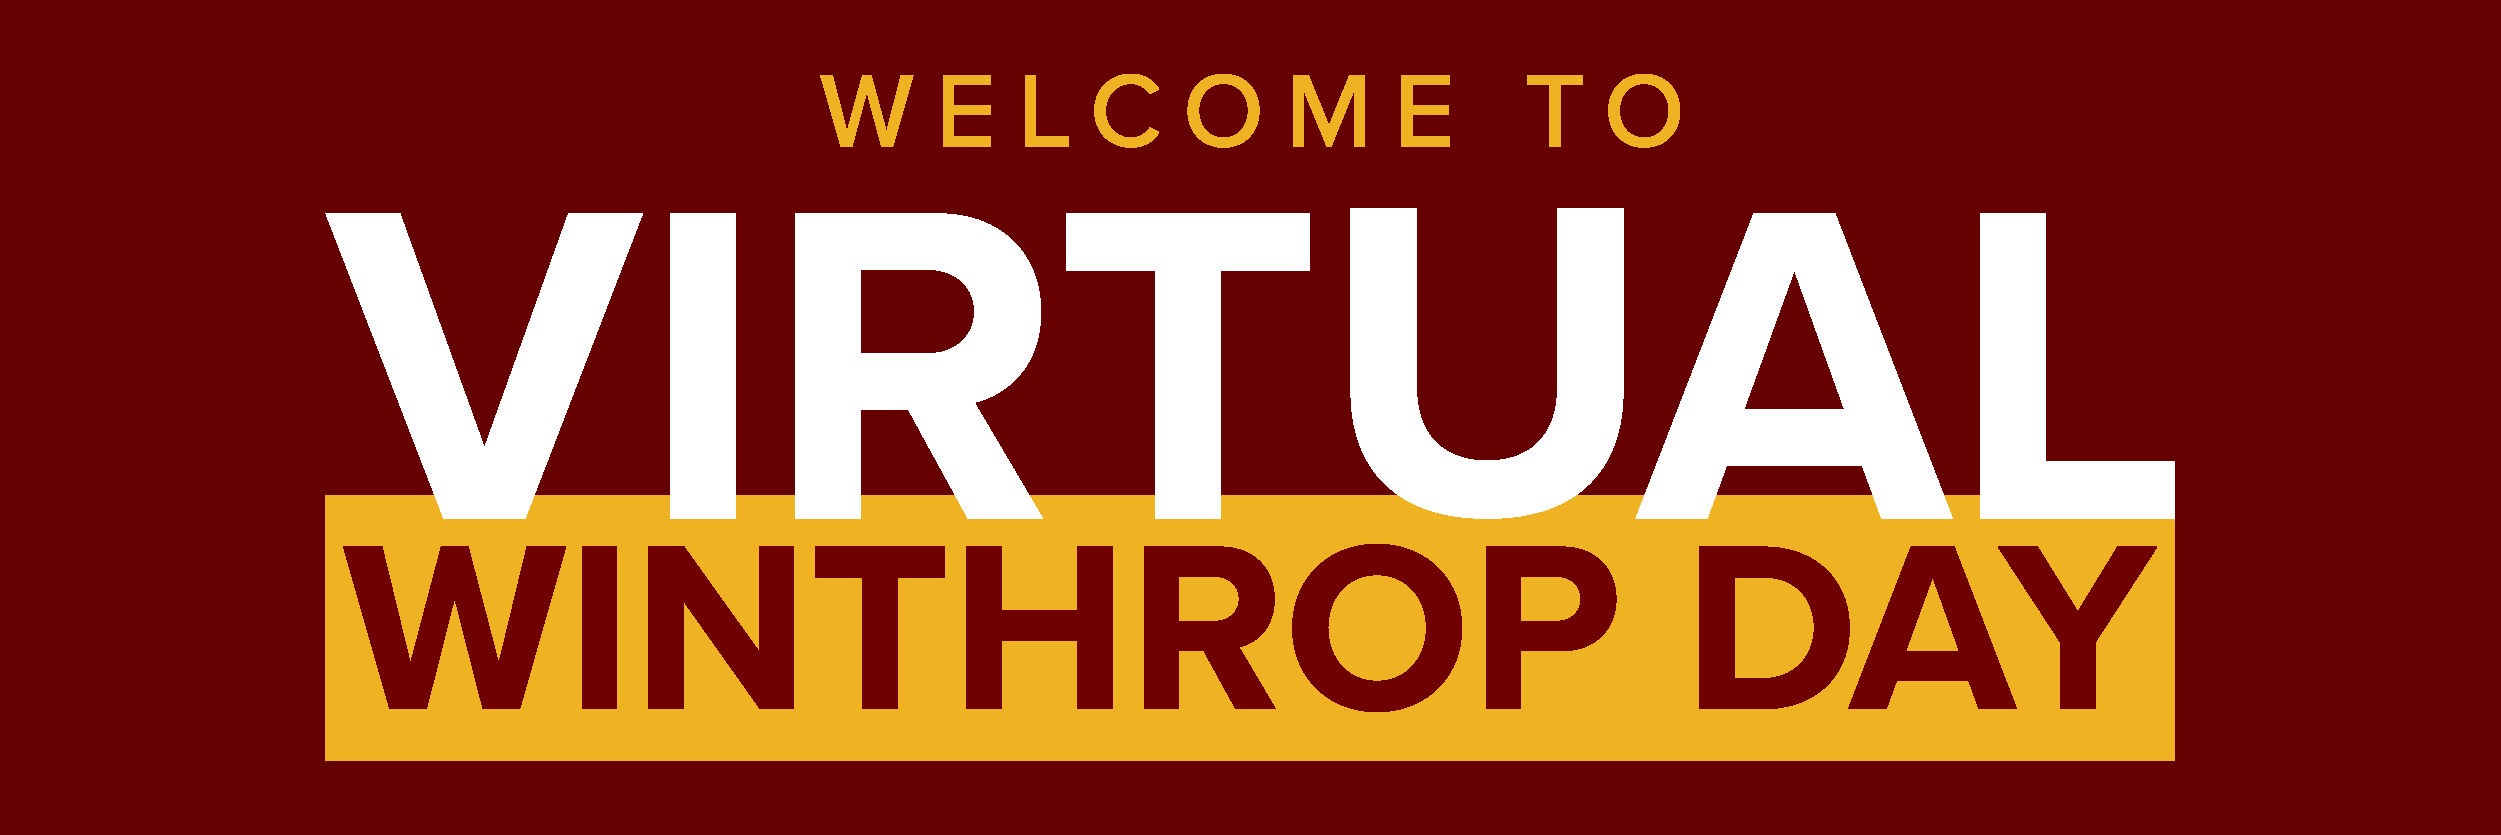 Welcome to virtual Winthrop Day